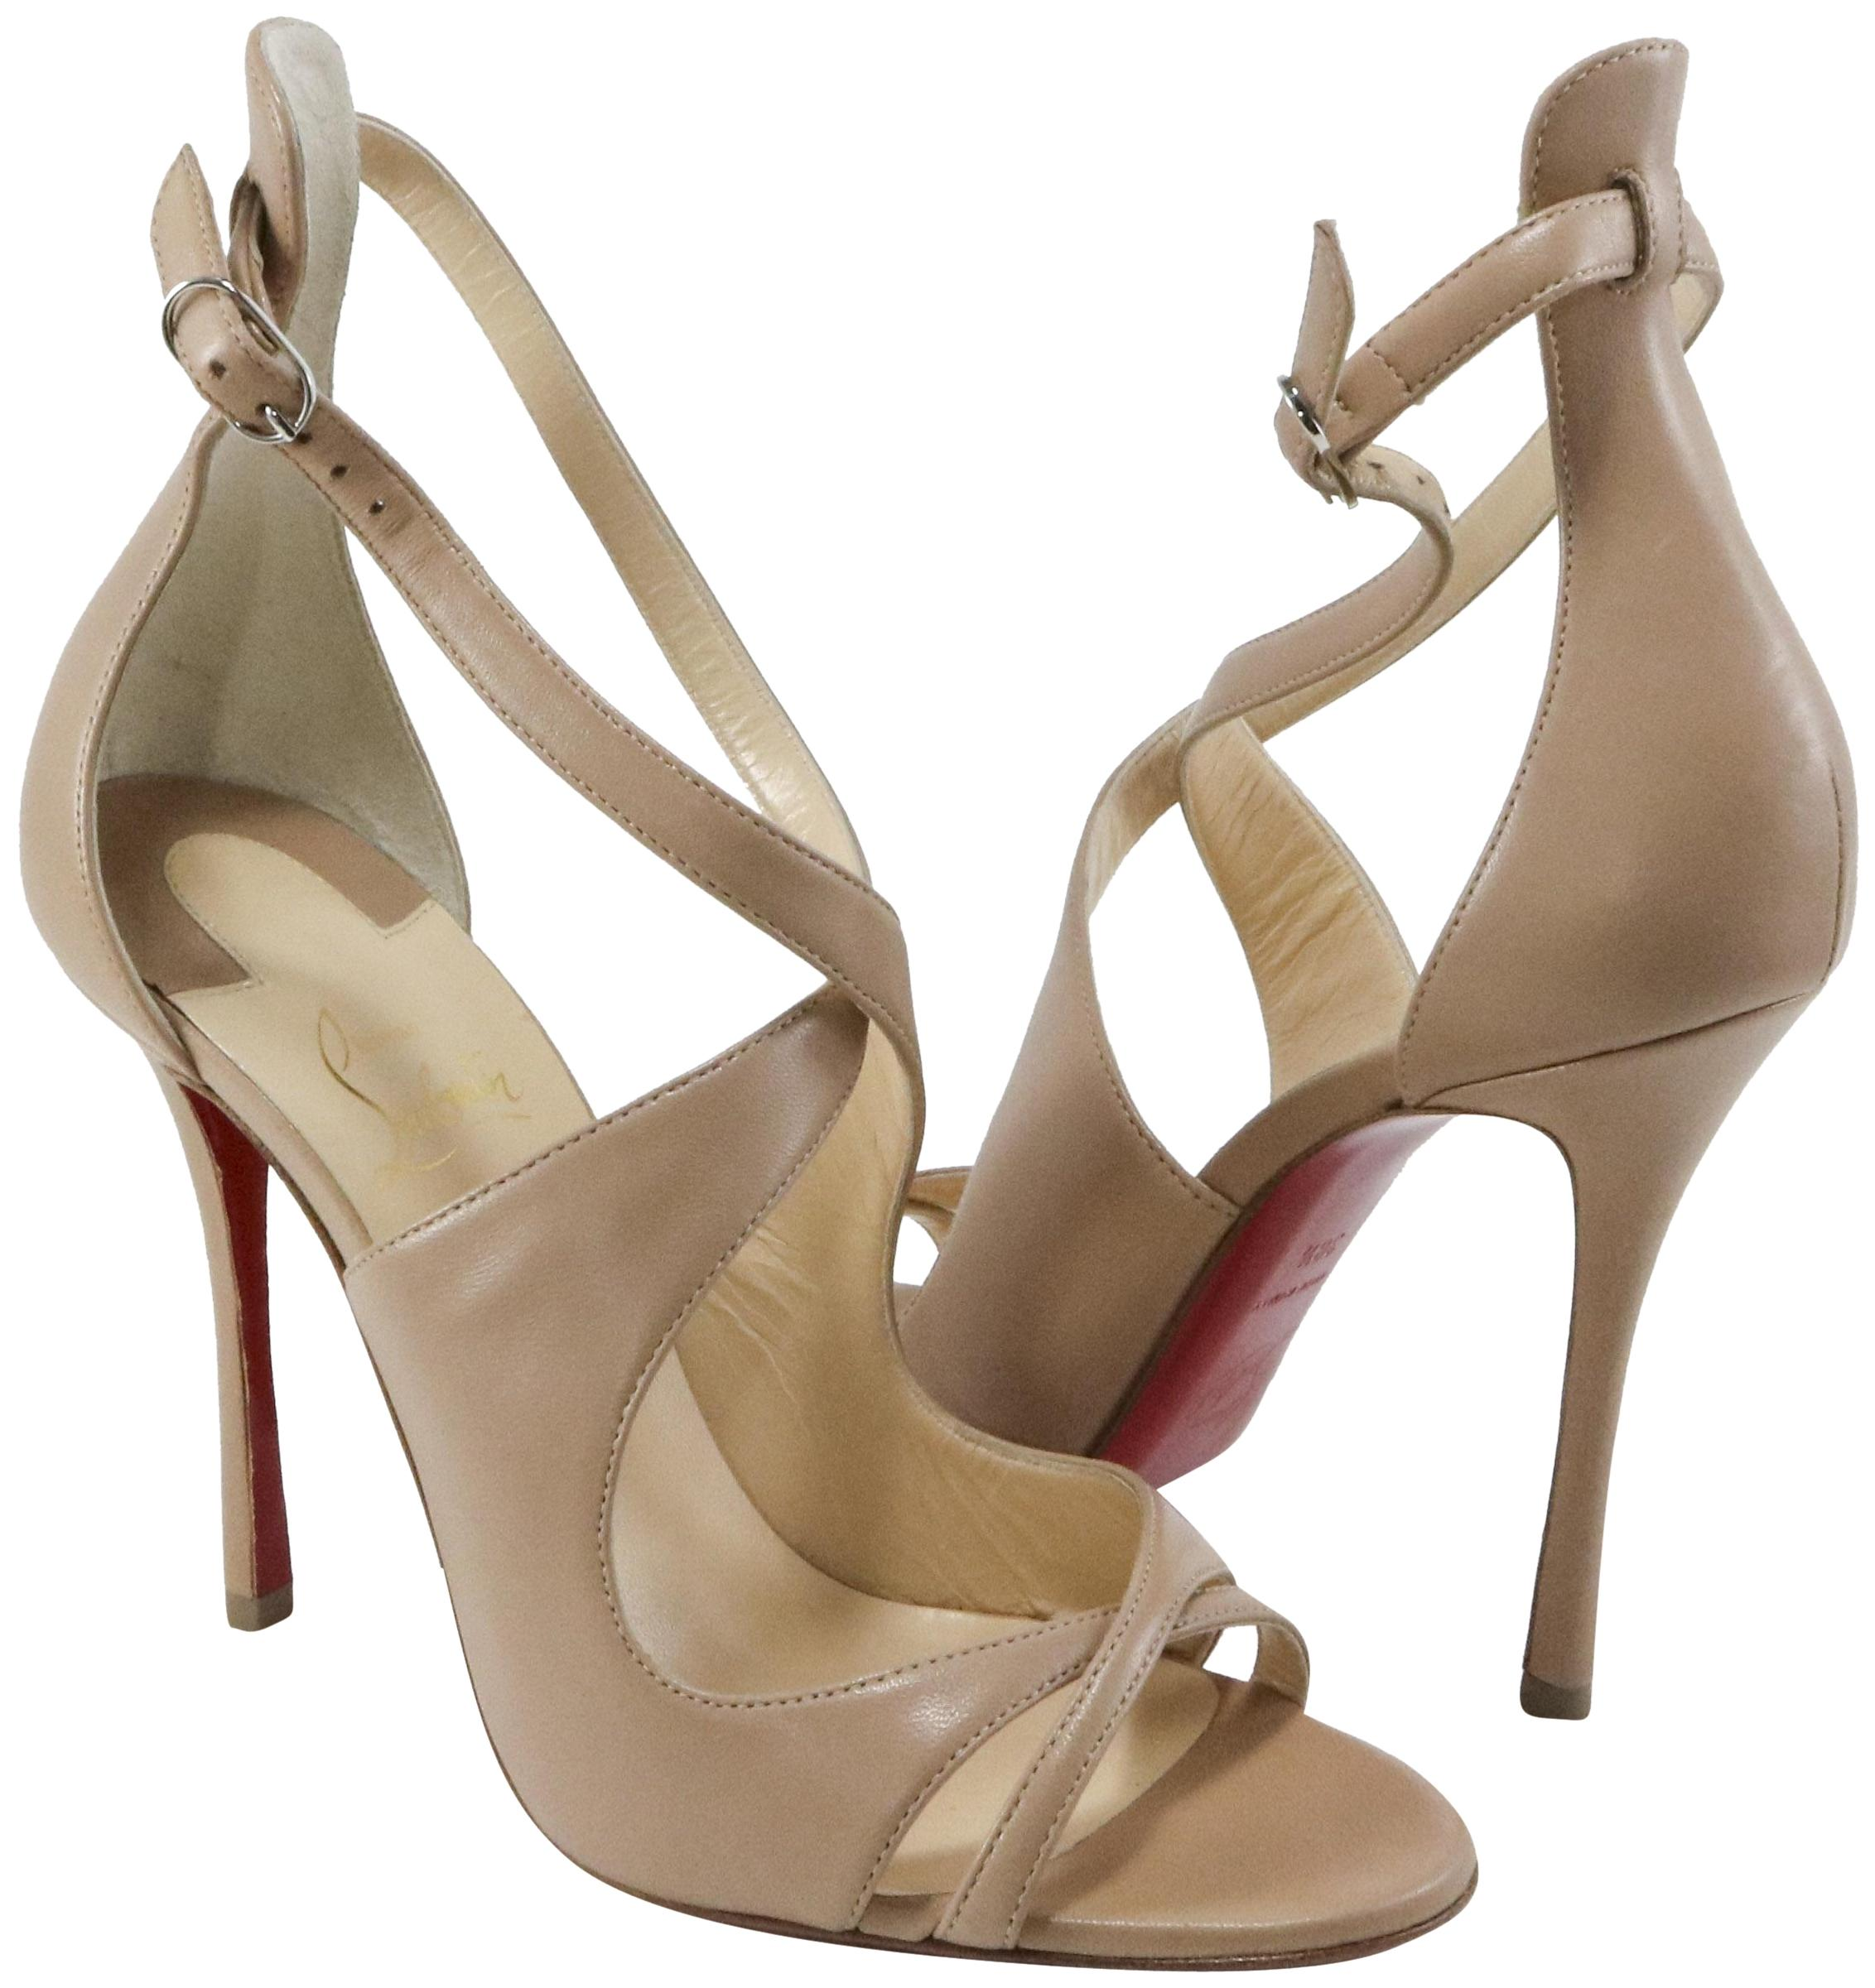 competitive price dcd8f 9db0c Christian Louboutin Nude Nude Nude Malefissima 100mm Strappy ...